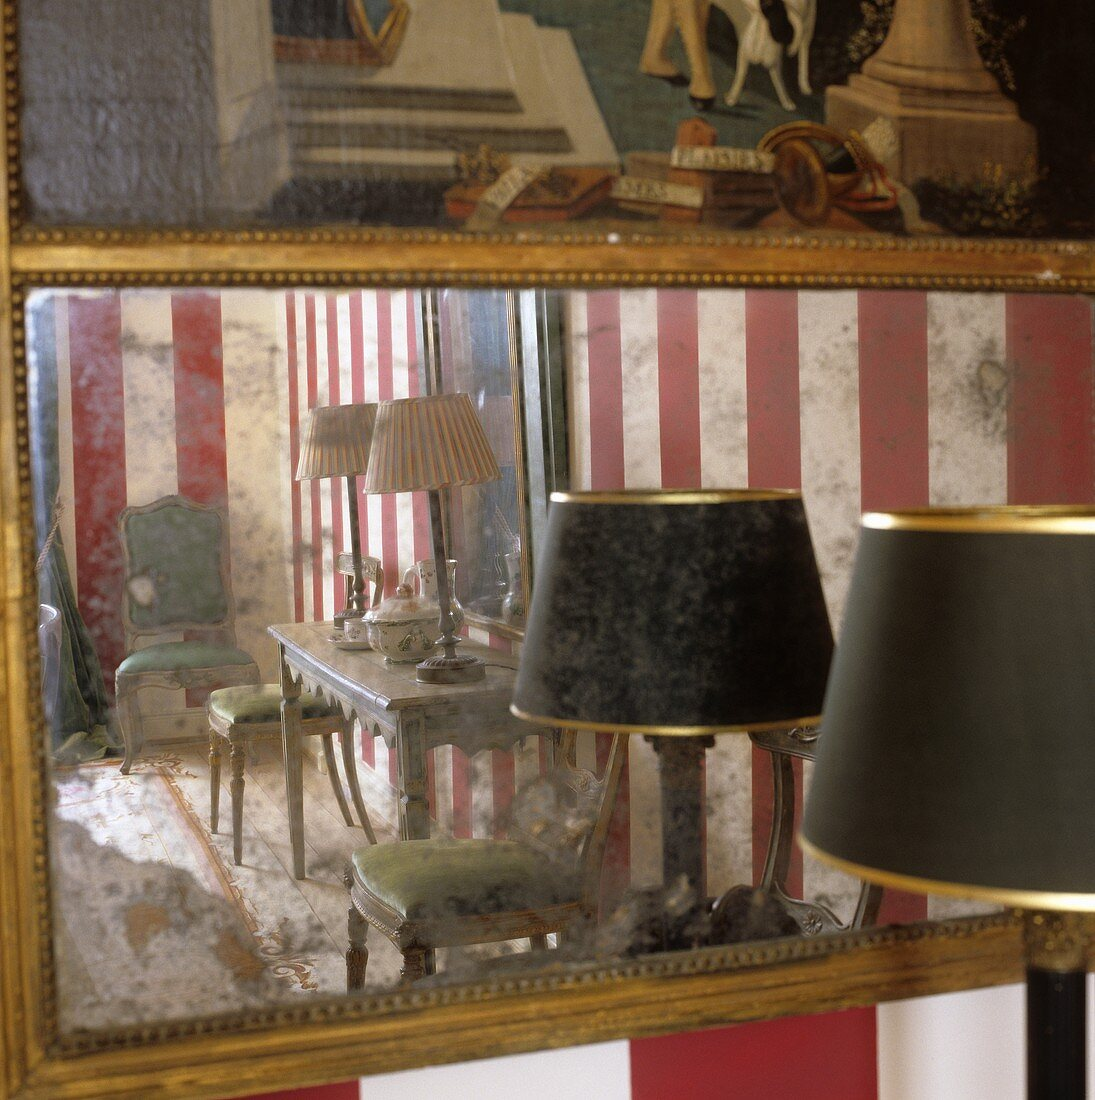 A table lamp with a black shade in front of an antique wall mirror